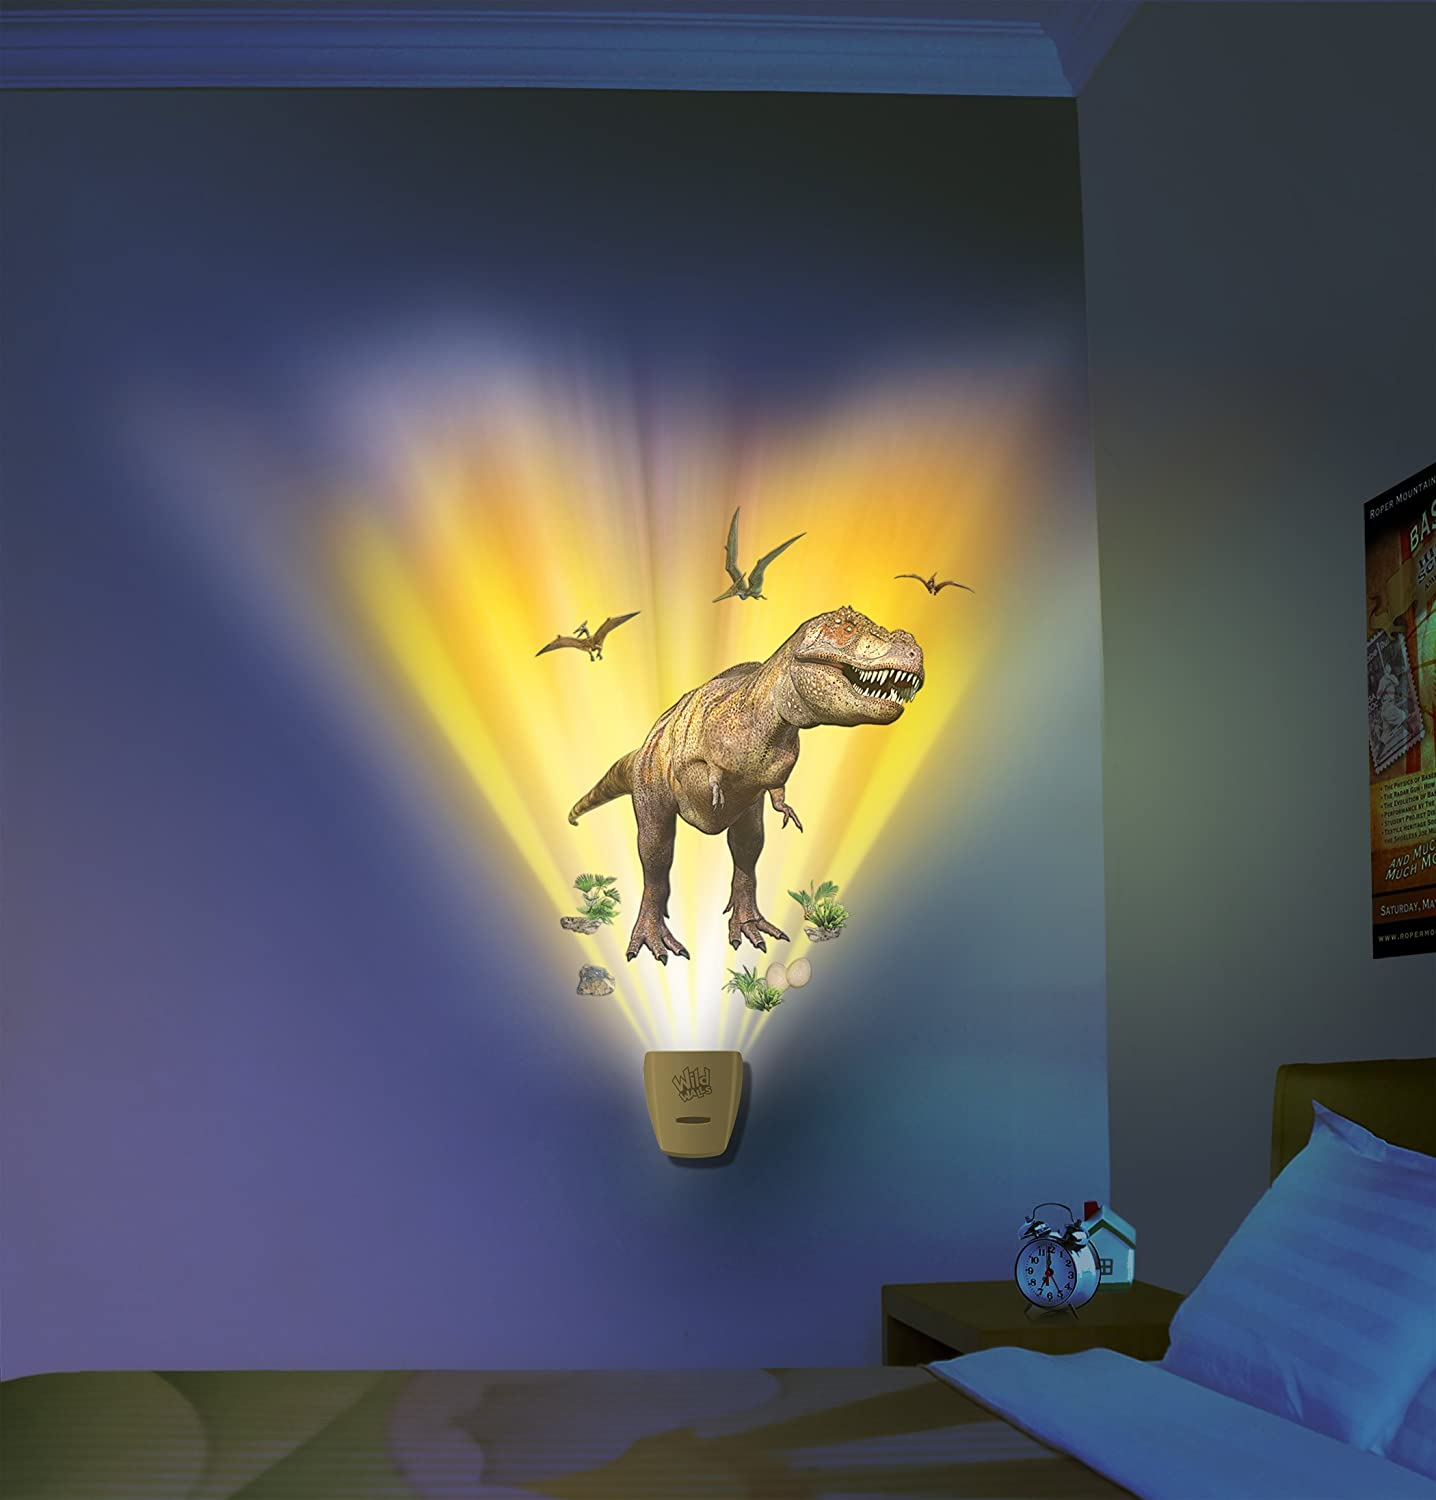 Amazon.com: In My Room Wild Walls Dinosaur Expedition Wall Decal ...